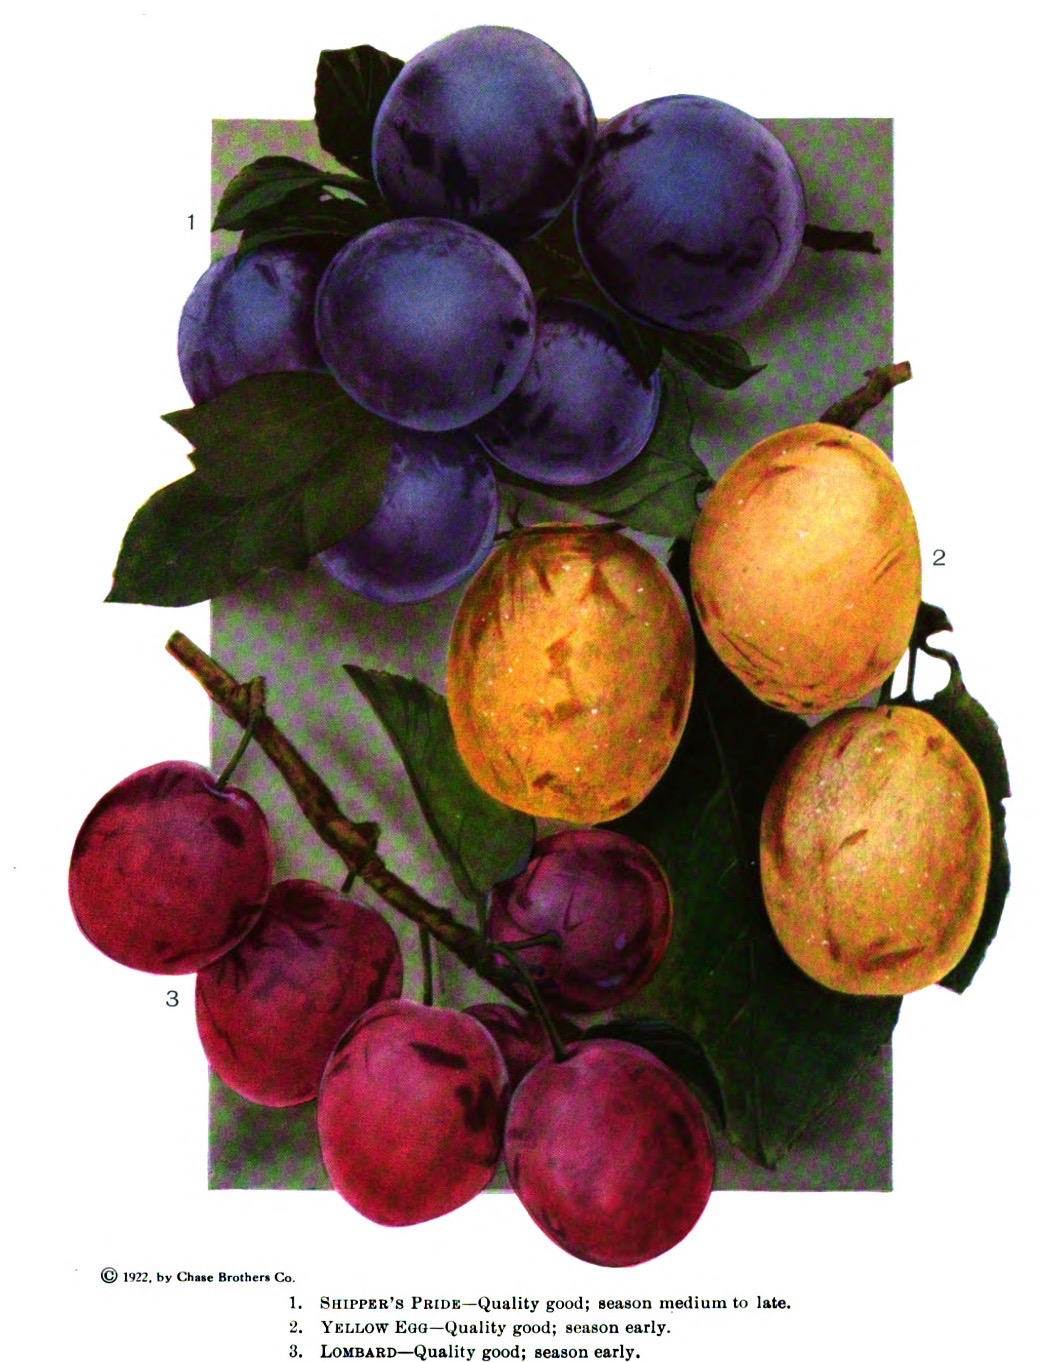 Illustration of three varieties of plums that are three different colors: purple Shipper's Pride, yellow Yellow Egg, and red Lombard.